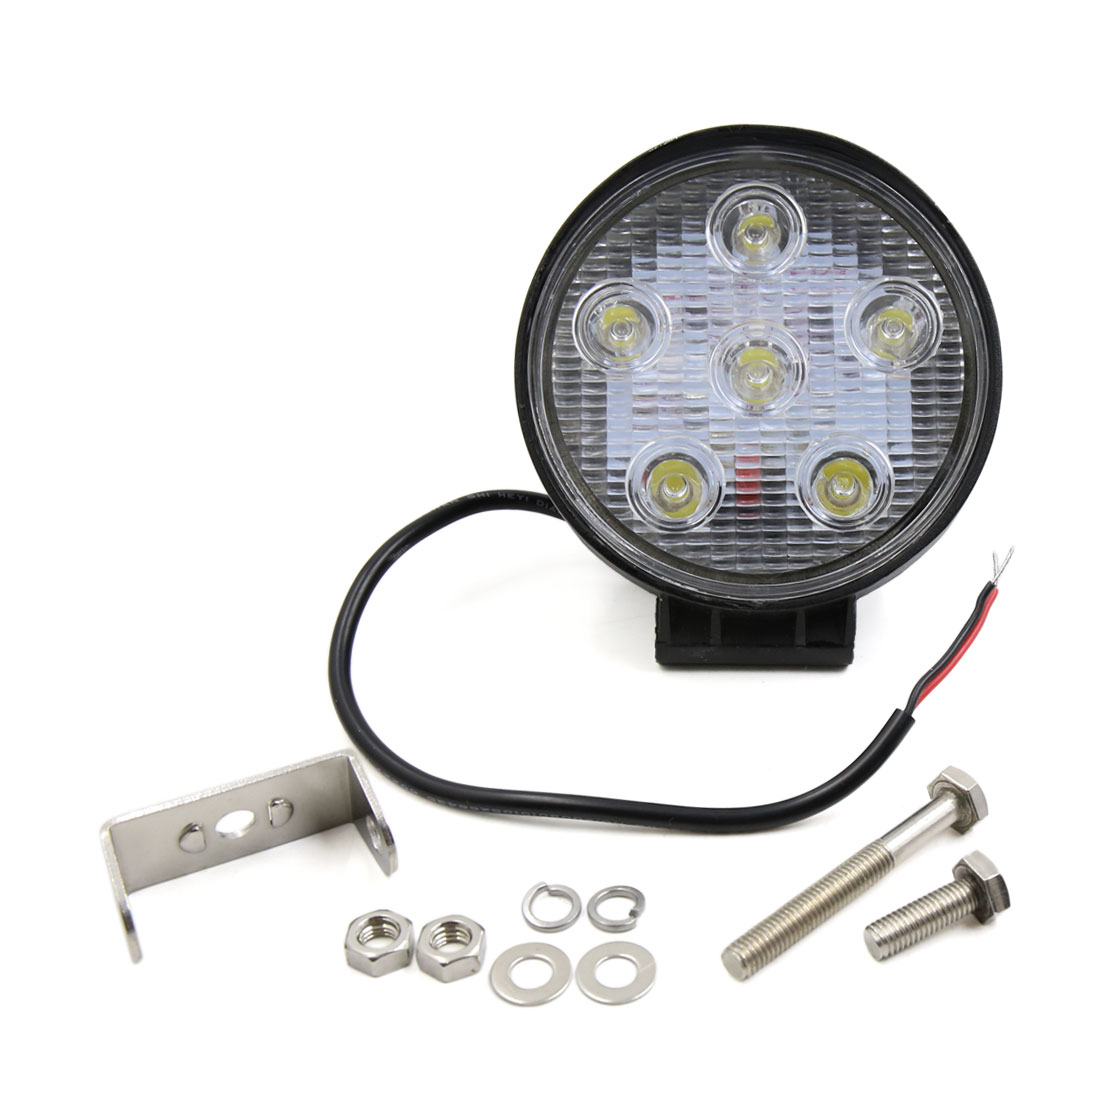 18W 6 LED Round Shape Flood Fog Driving Work Light Lamp Truck Roof Bar Off-Road Internal